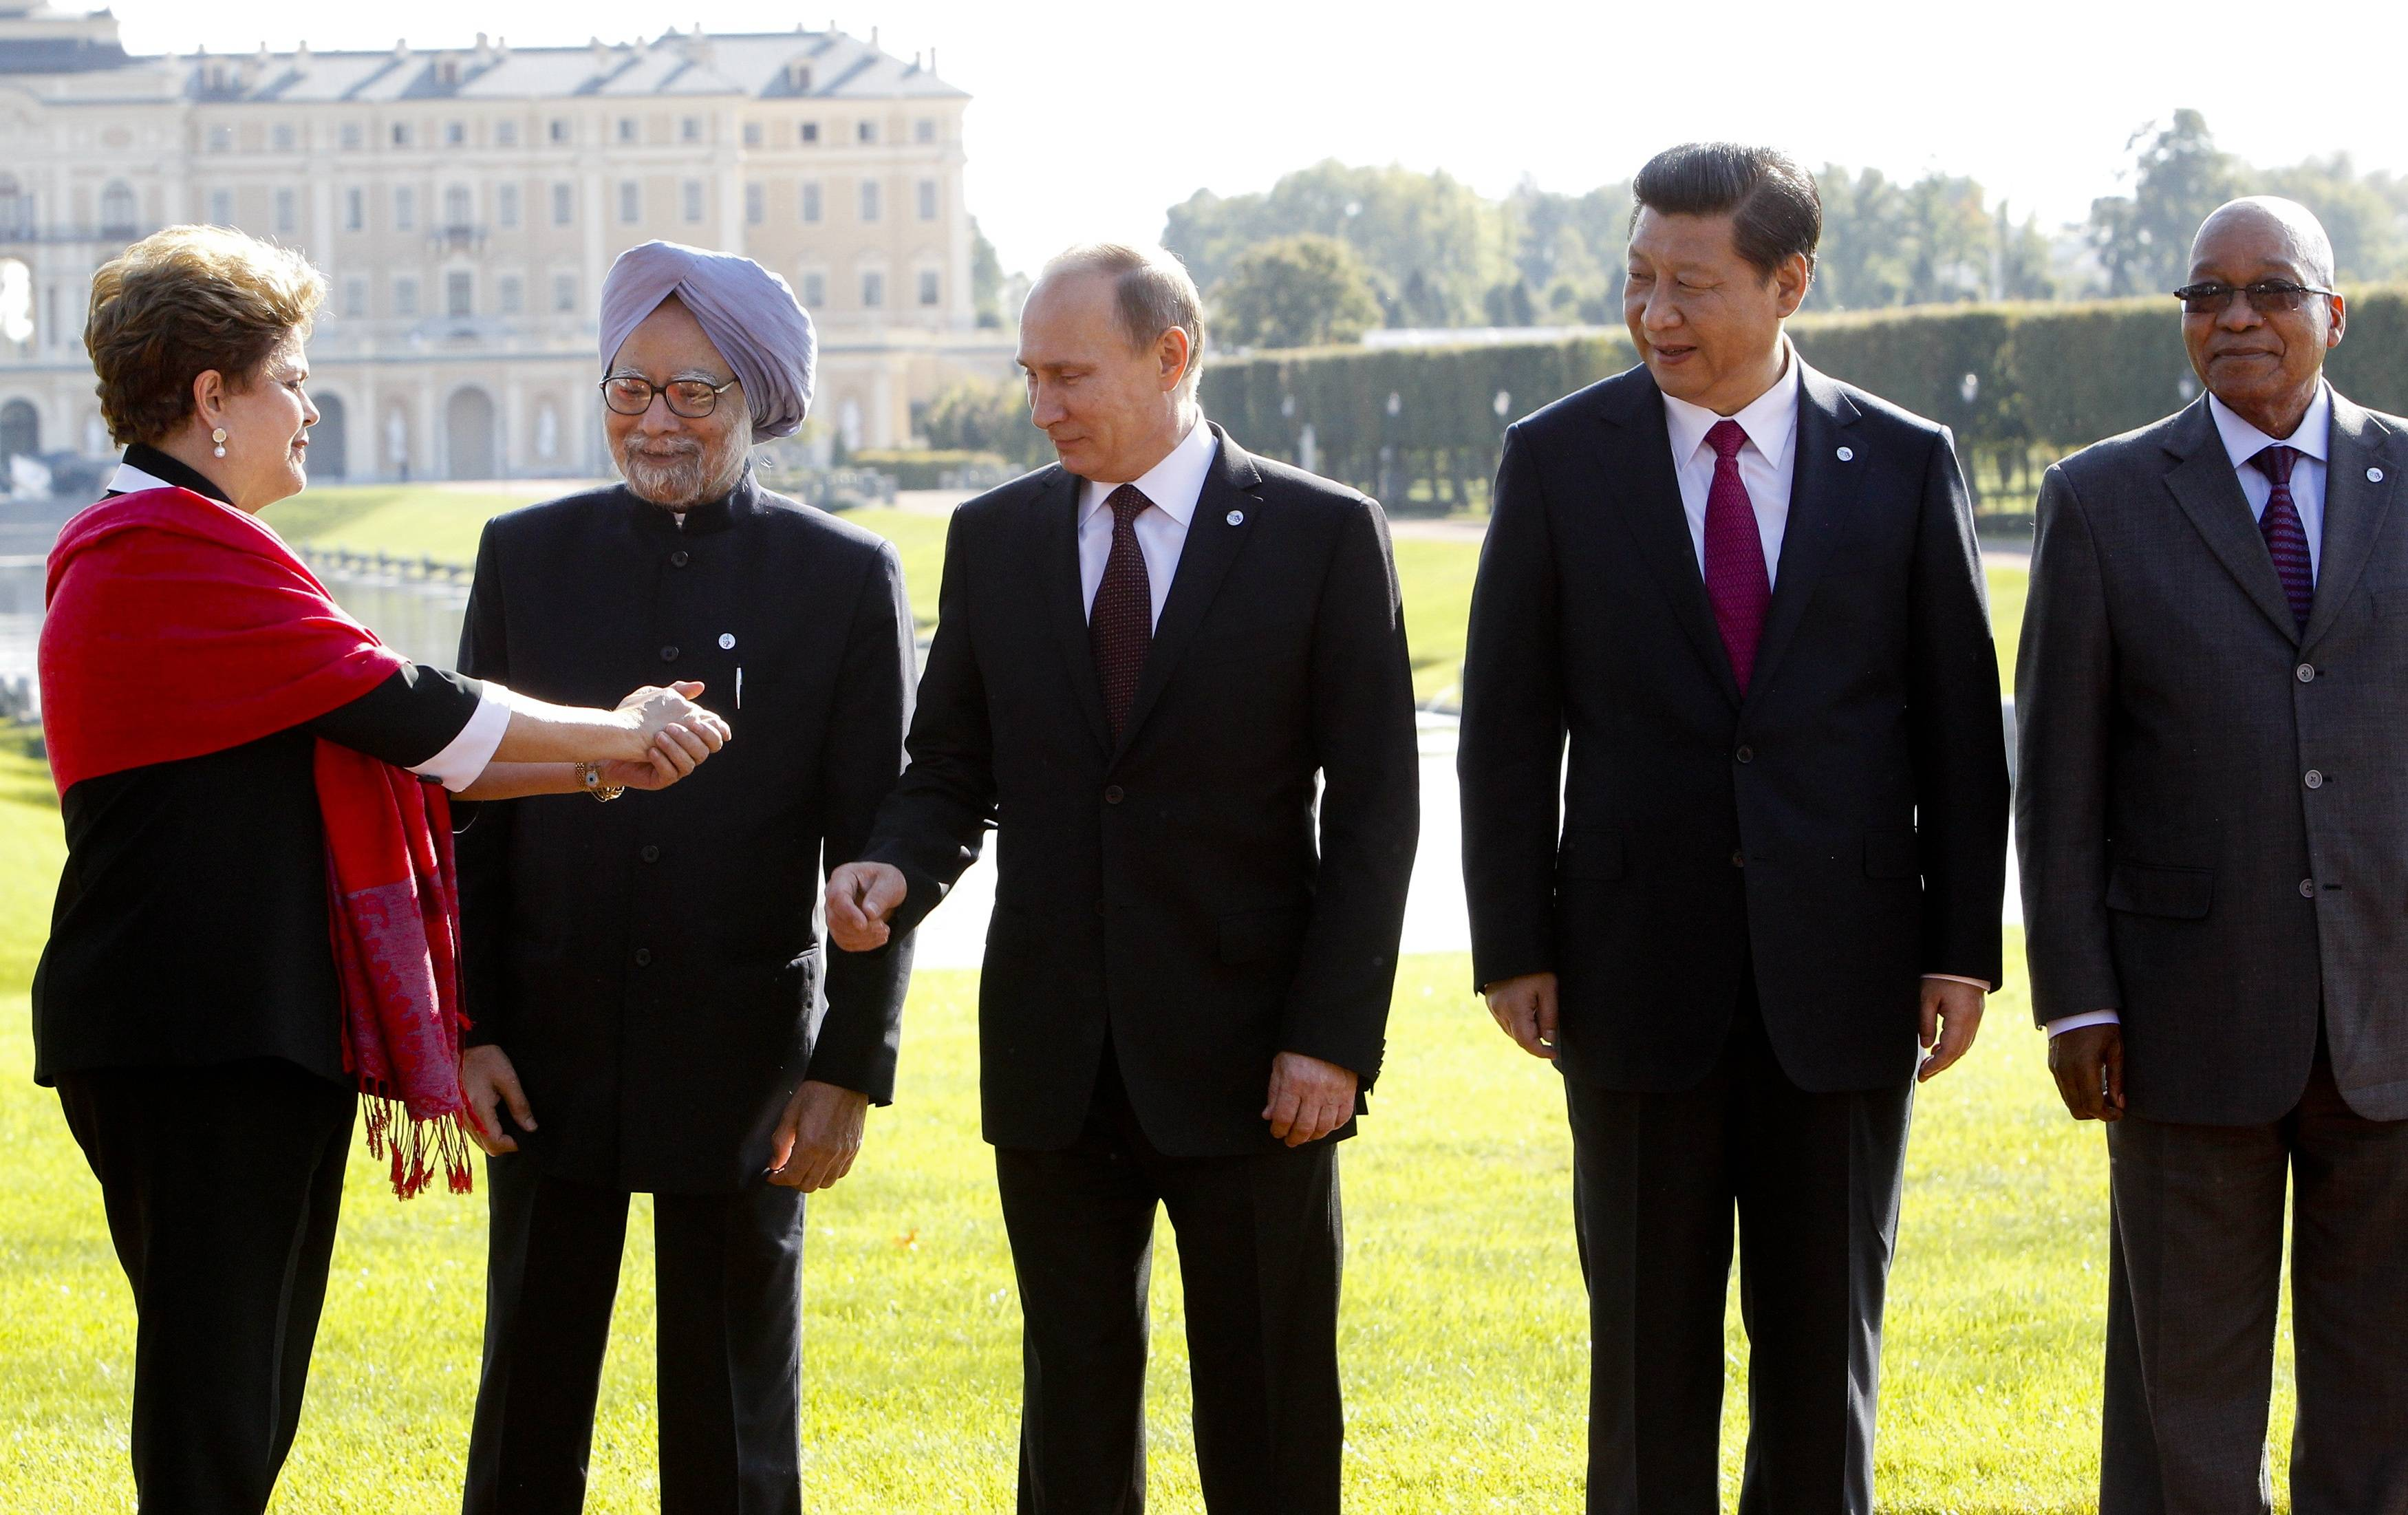 From left, Brazil's President Dilma Rousseff gestures to then Indian Prime Minister Manmohan Singh, Russia's President Vladimir Putin, China's President Xi Jinping and South African President Jacob Zuma, as they gather for a group photo after a BRICS leaders' meeting at the G-20 Summit in St. Petersburg, Russia on Sept. 5, 2013.